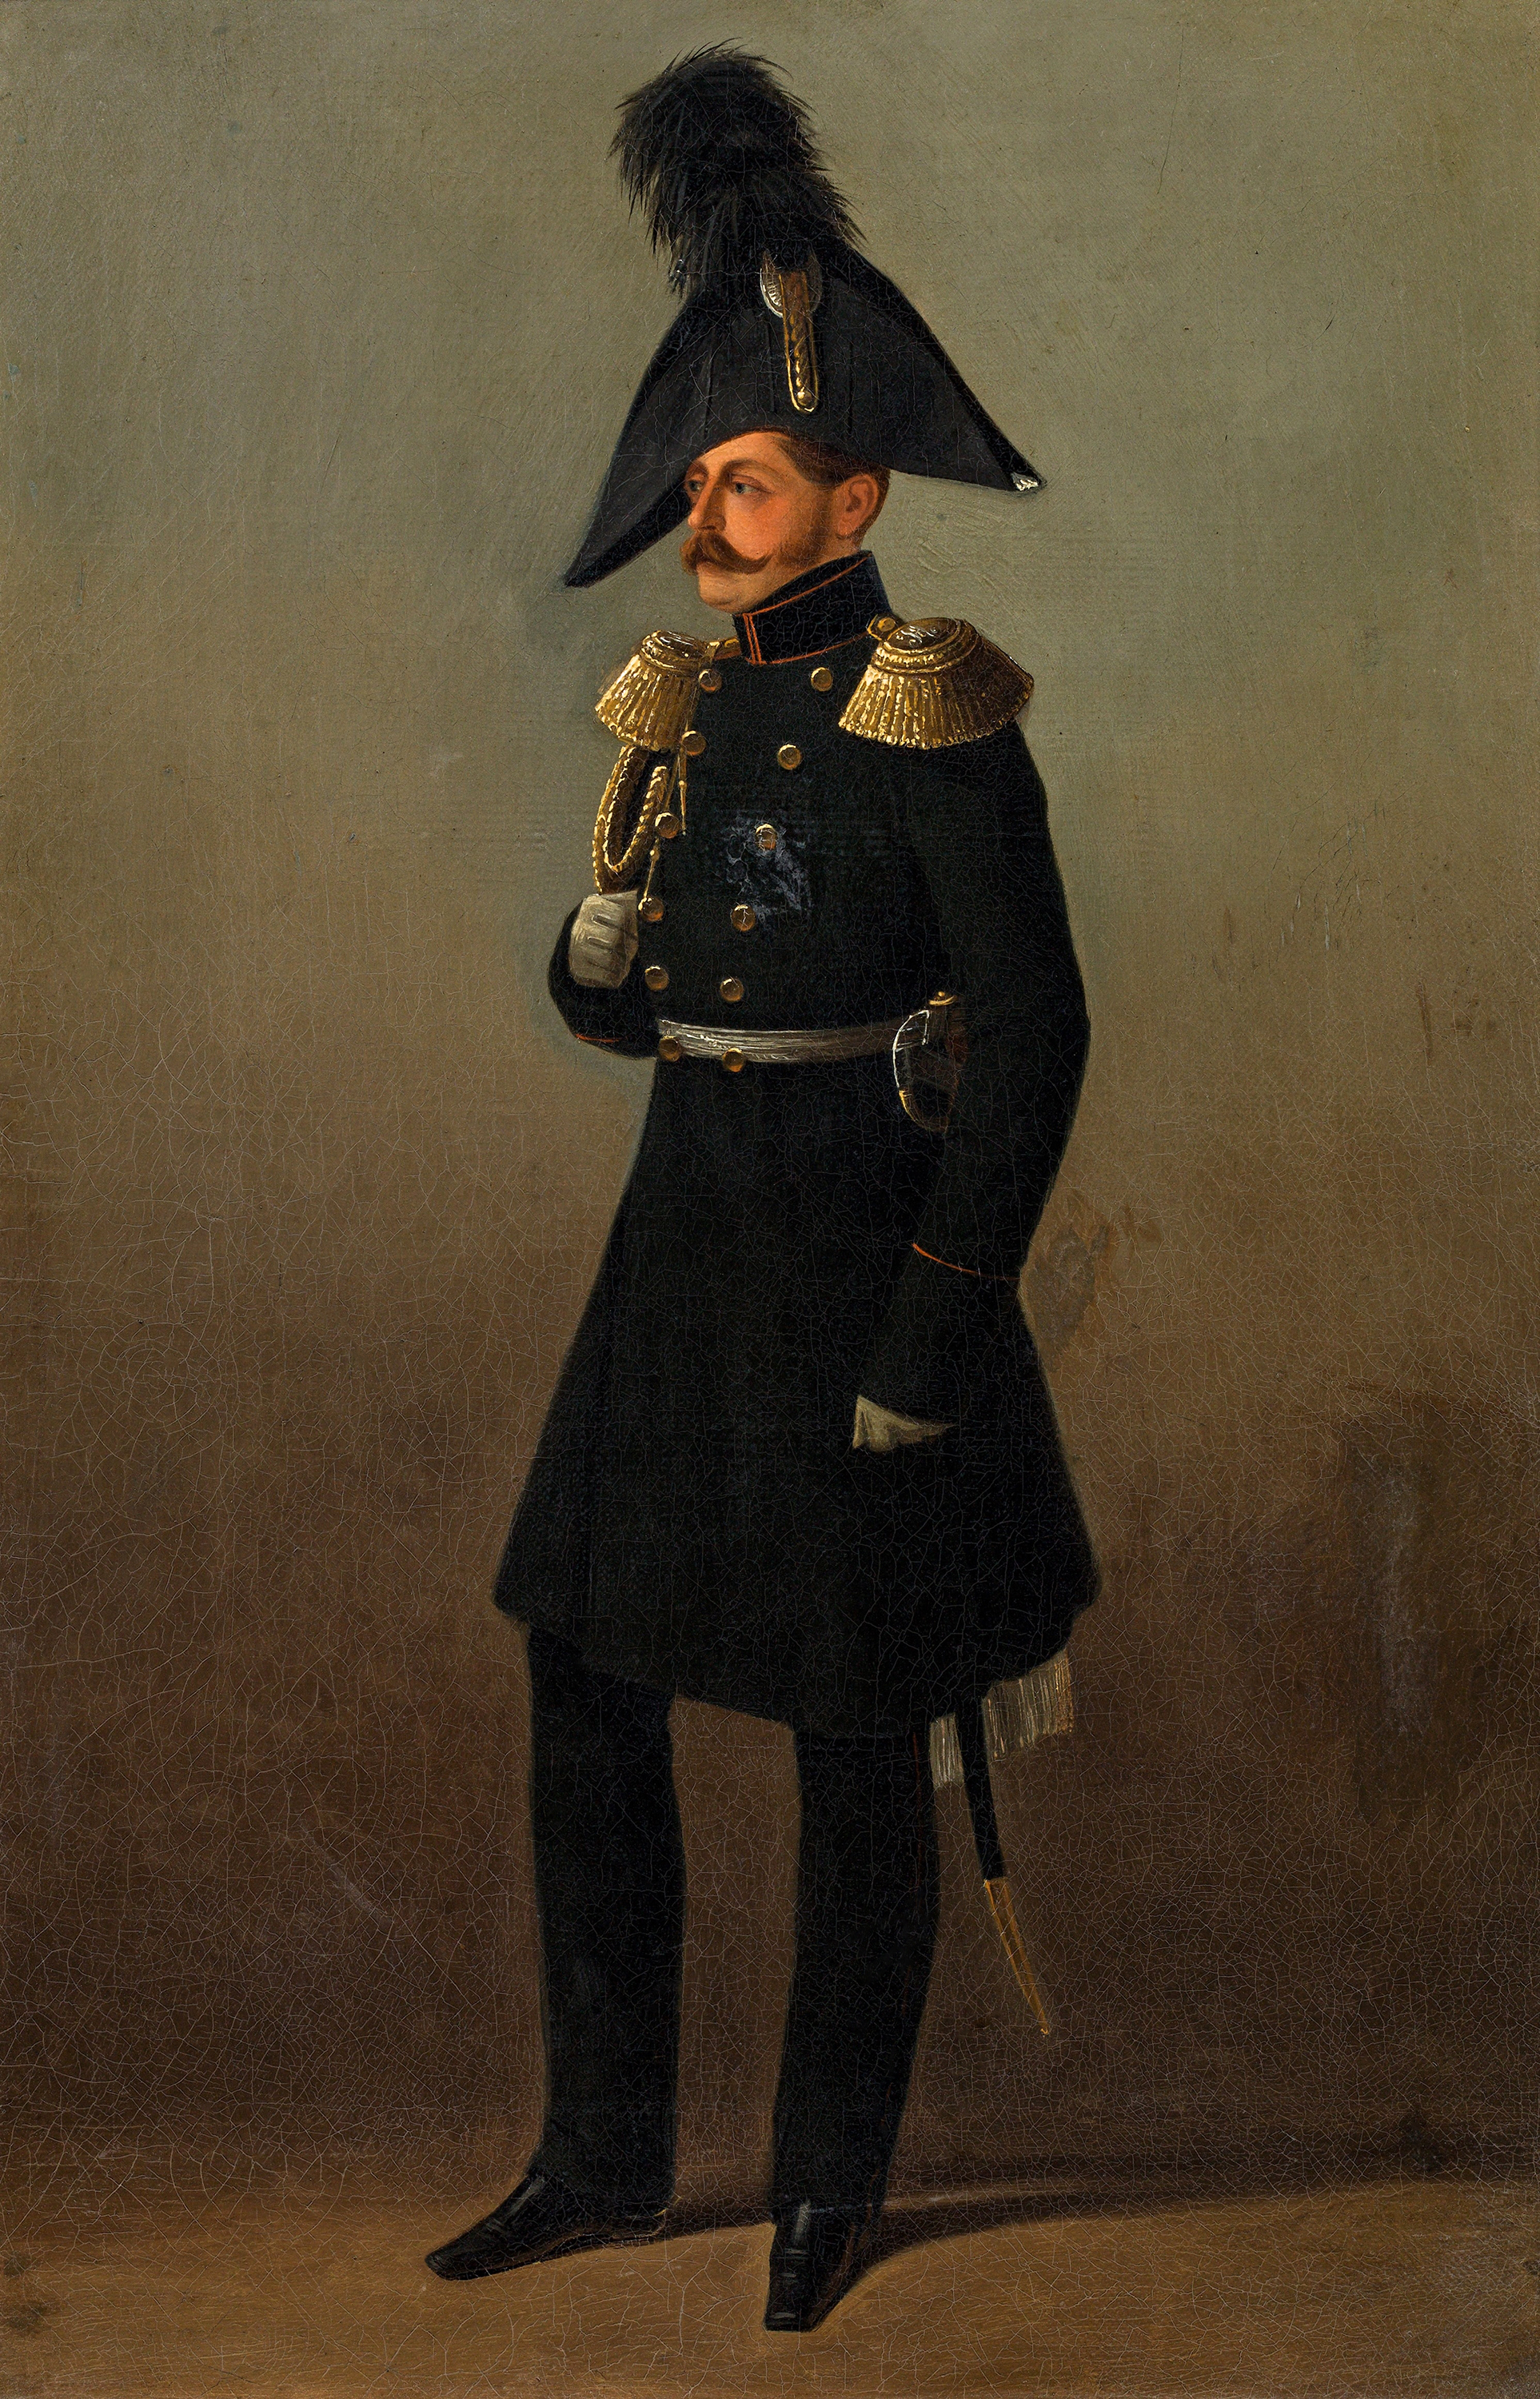 Portrait of Michael Pavlovich (1798-1849), Grand Duke of Russia; chief of artillery (Russian: генерал-фельдцейхмейстер), Inspector General of the Engineer Troops (1825), Commander-in-Chief of the Guards and Grenadier Corps (1844) | Portraits of Kings